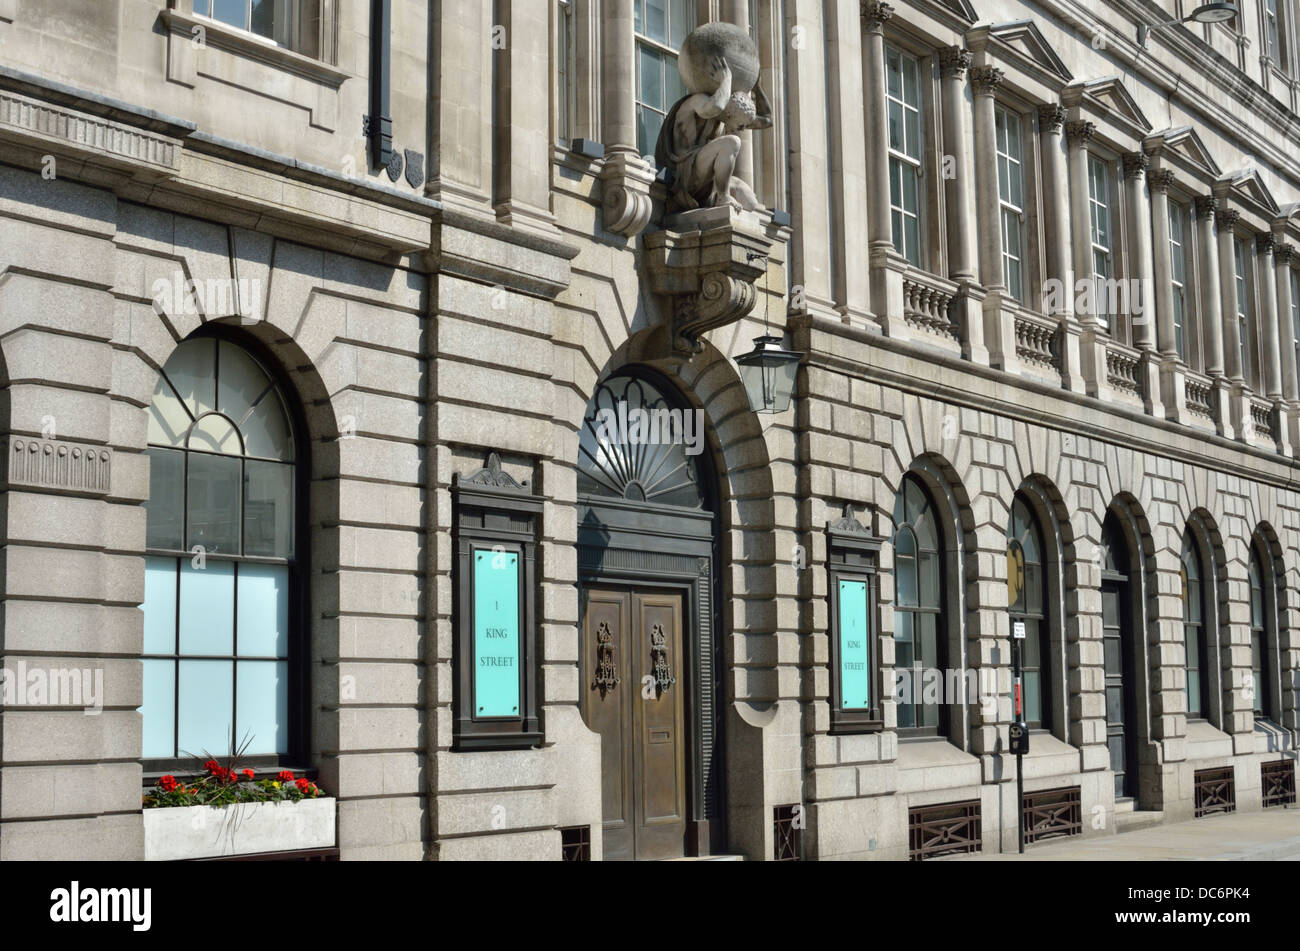 Number 1 One King Street office building, City of London, London, UK. - Stock Image